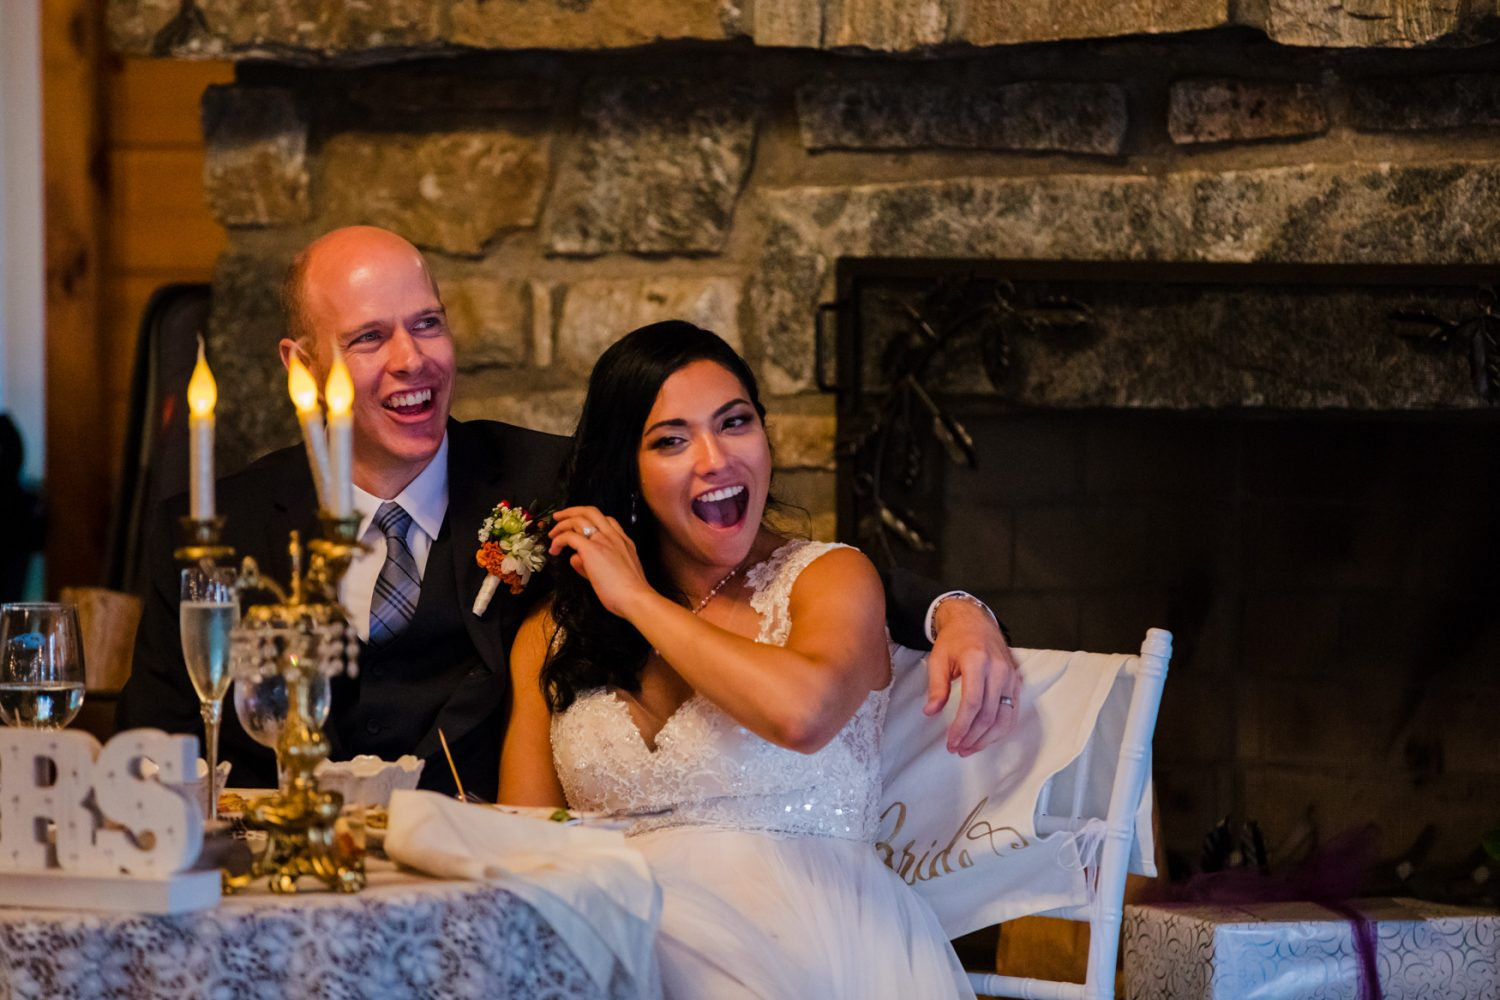 Bride Laughing at Toast Waynesville NC Wedding Photography Inn at Tranquility Farm